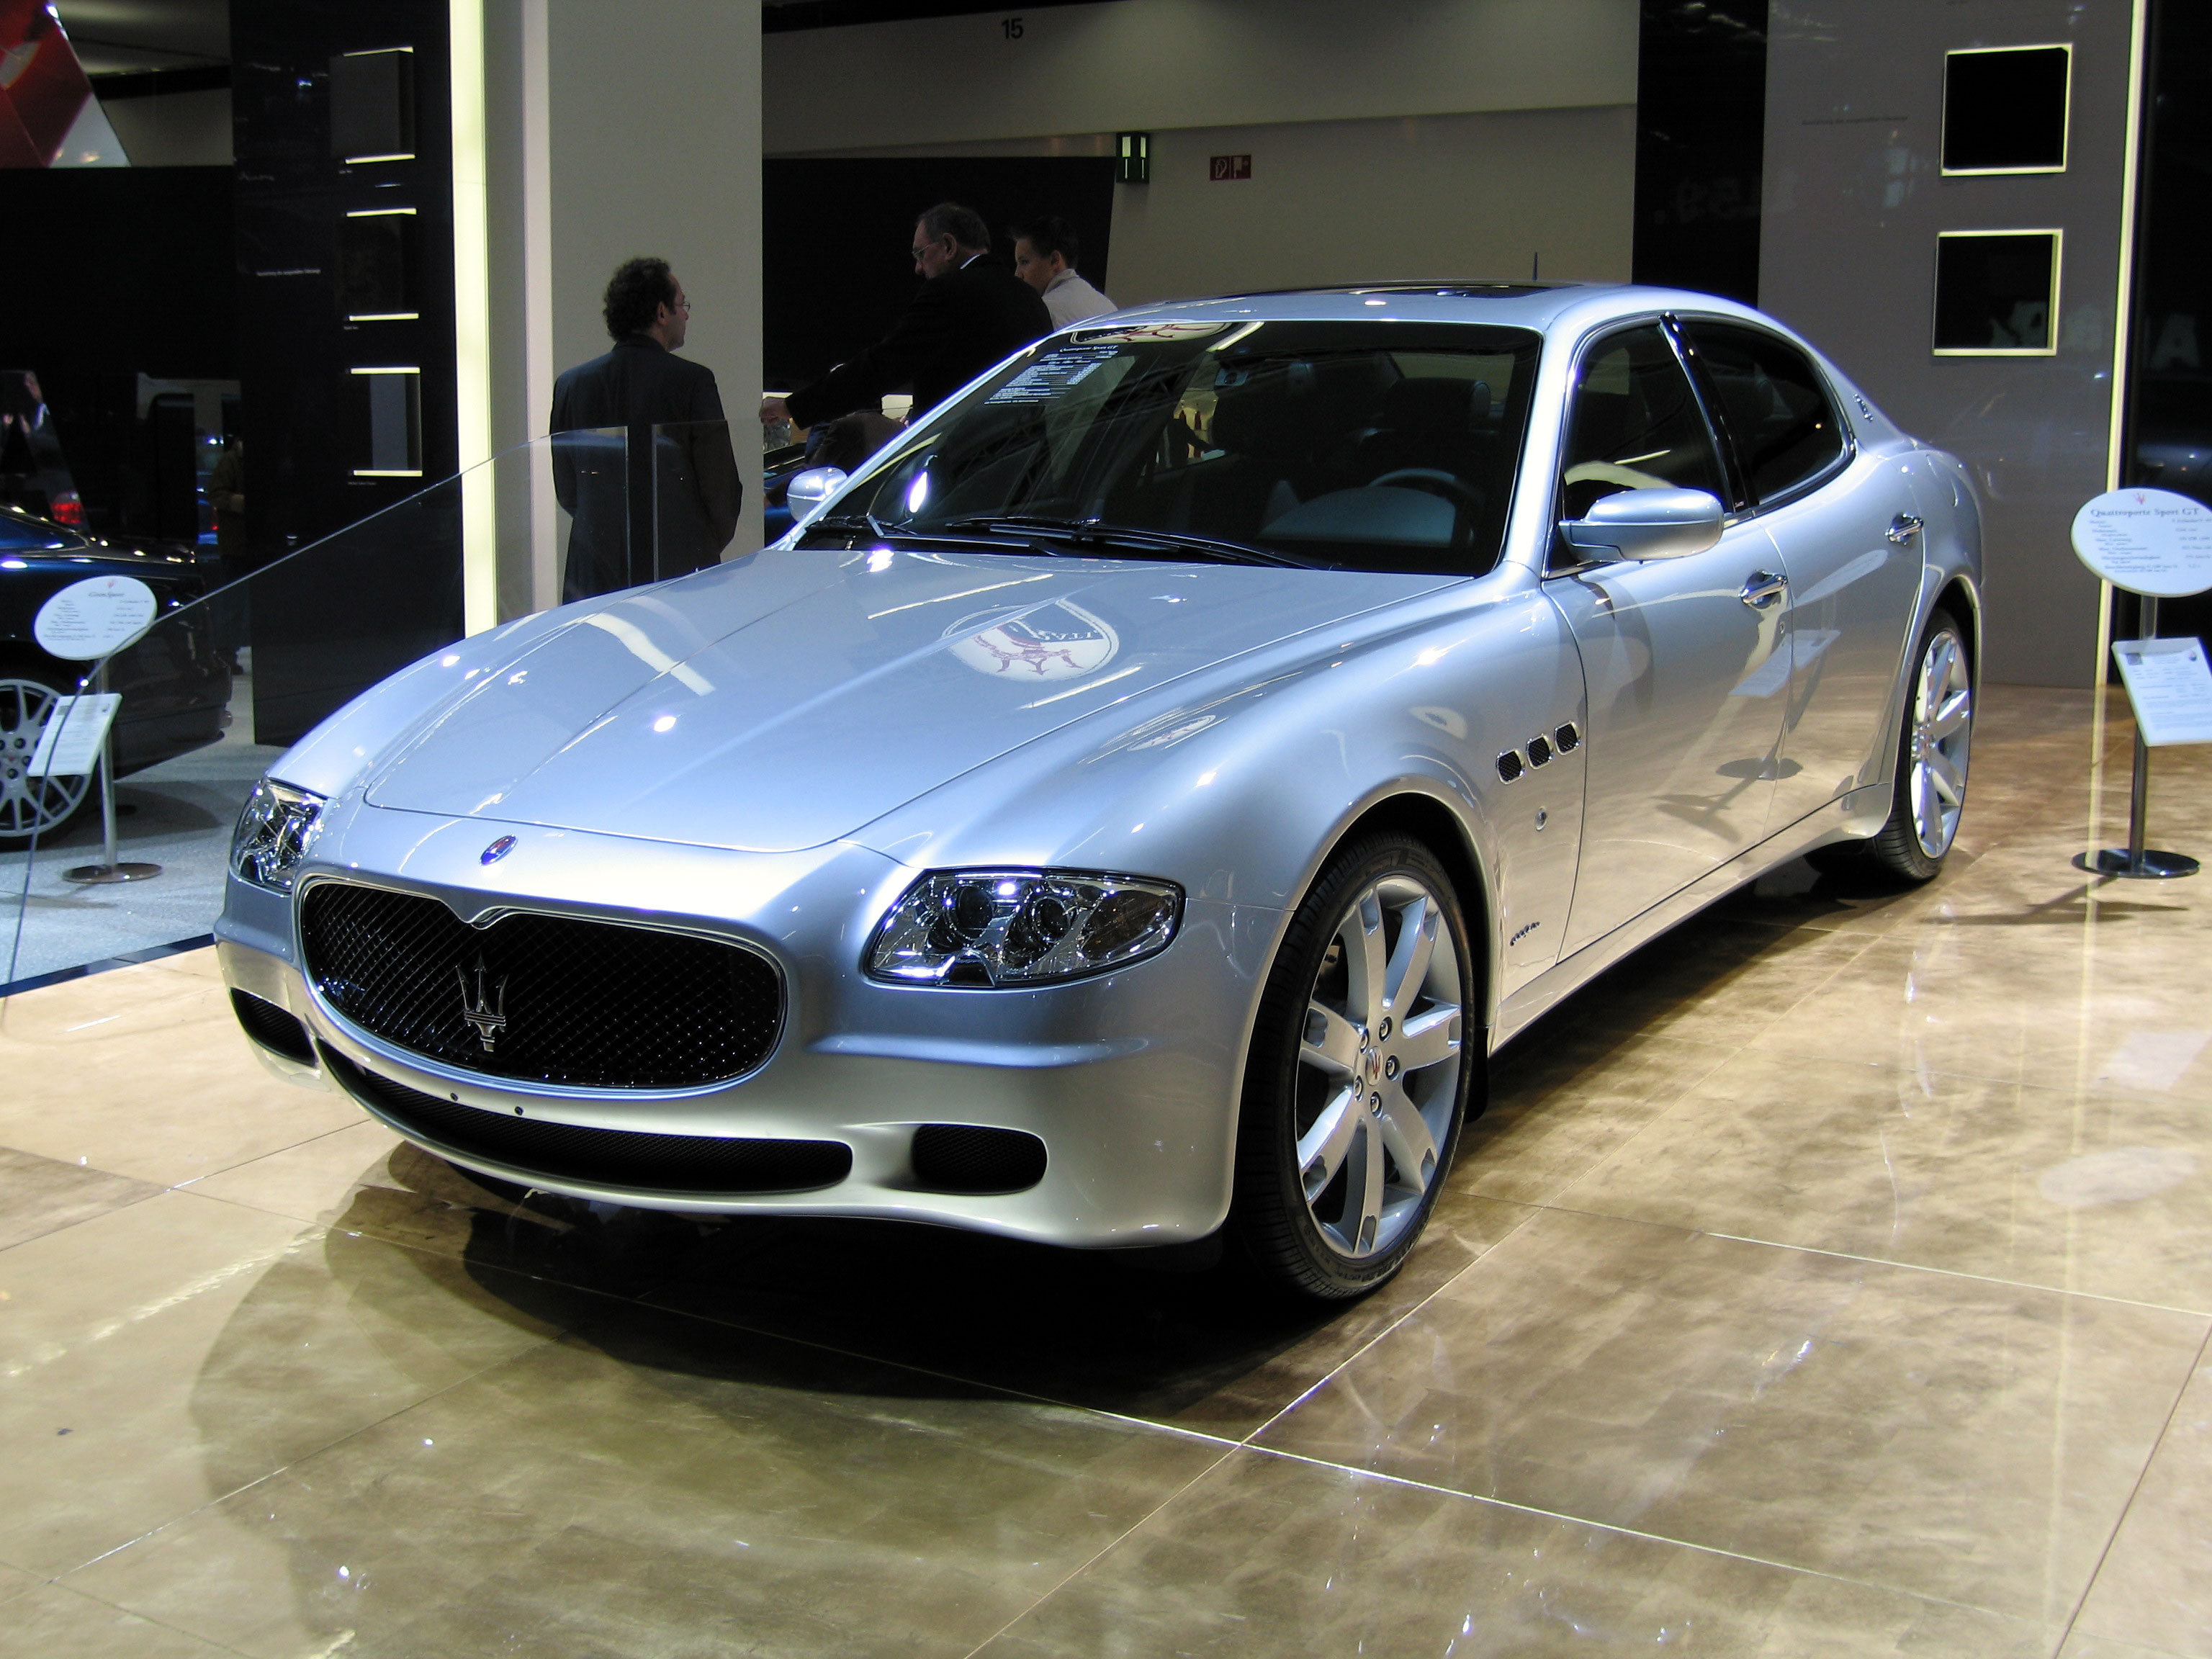 maserati quattroporte 2005 review amazing pictures and images look at the car. Black Bedroom Furniture Sets. Home Design Ideas